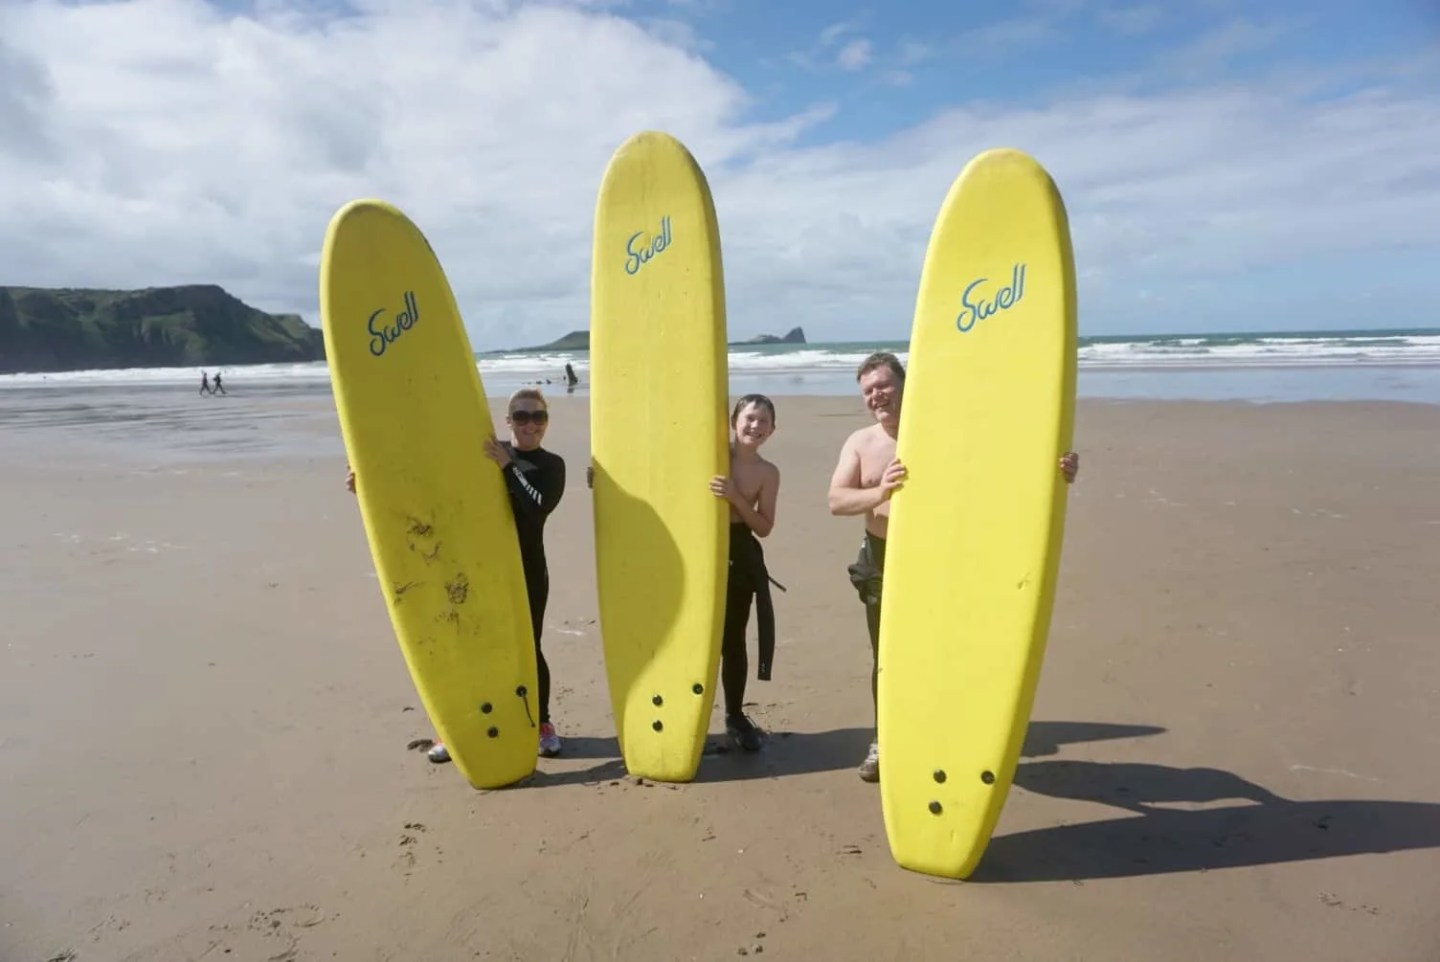 Booking surfing lessons in South Wales www.extraordinarychaos.com